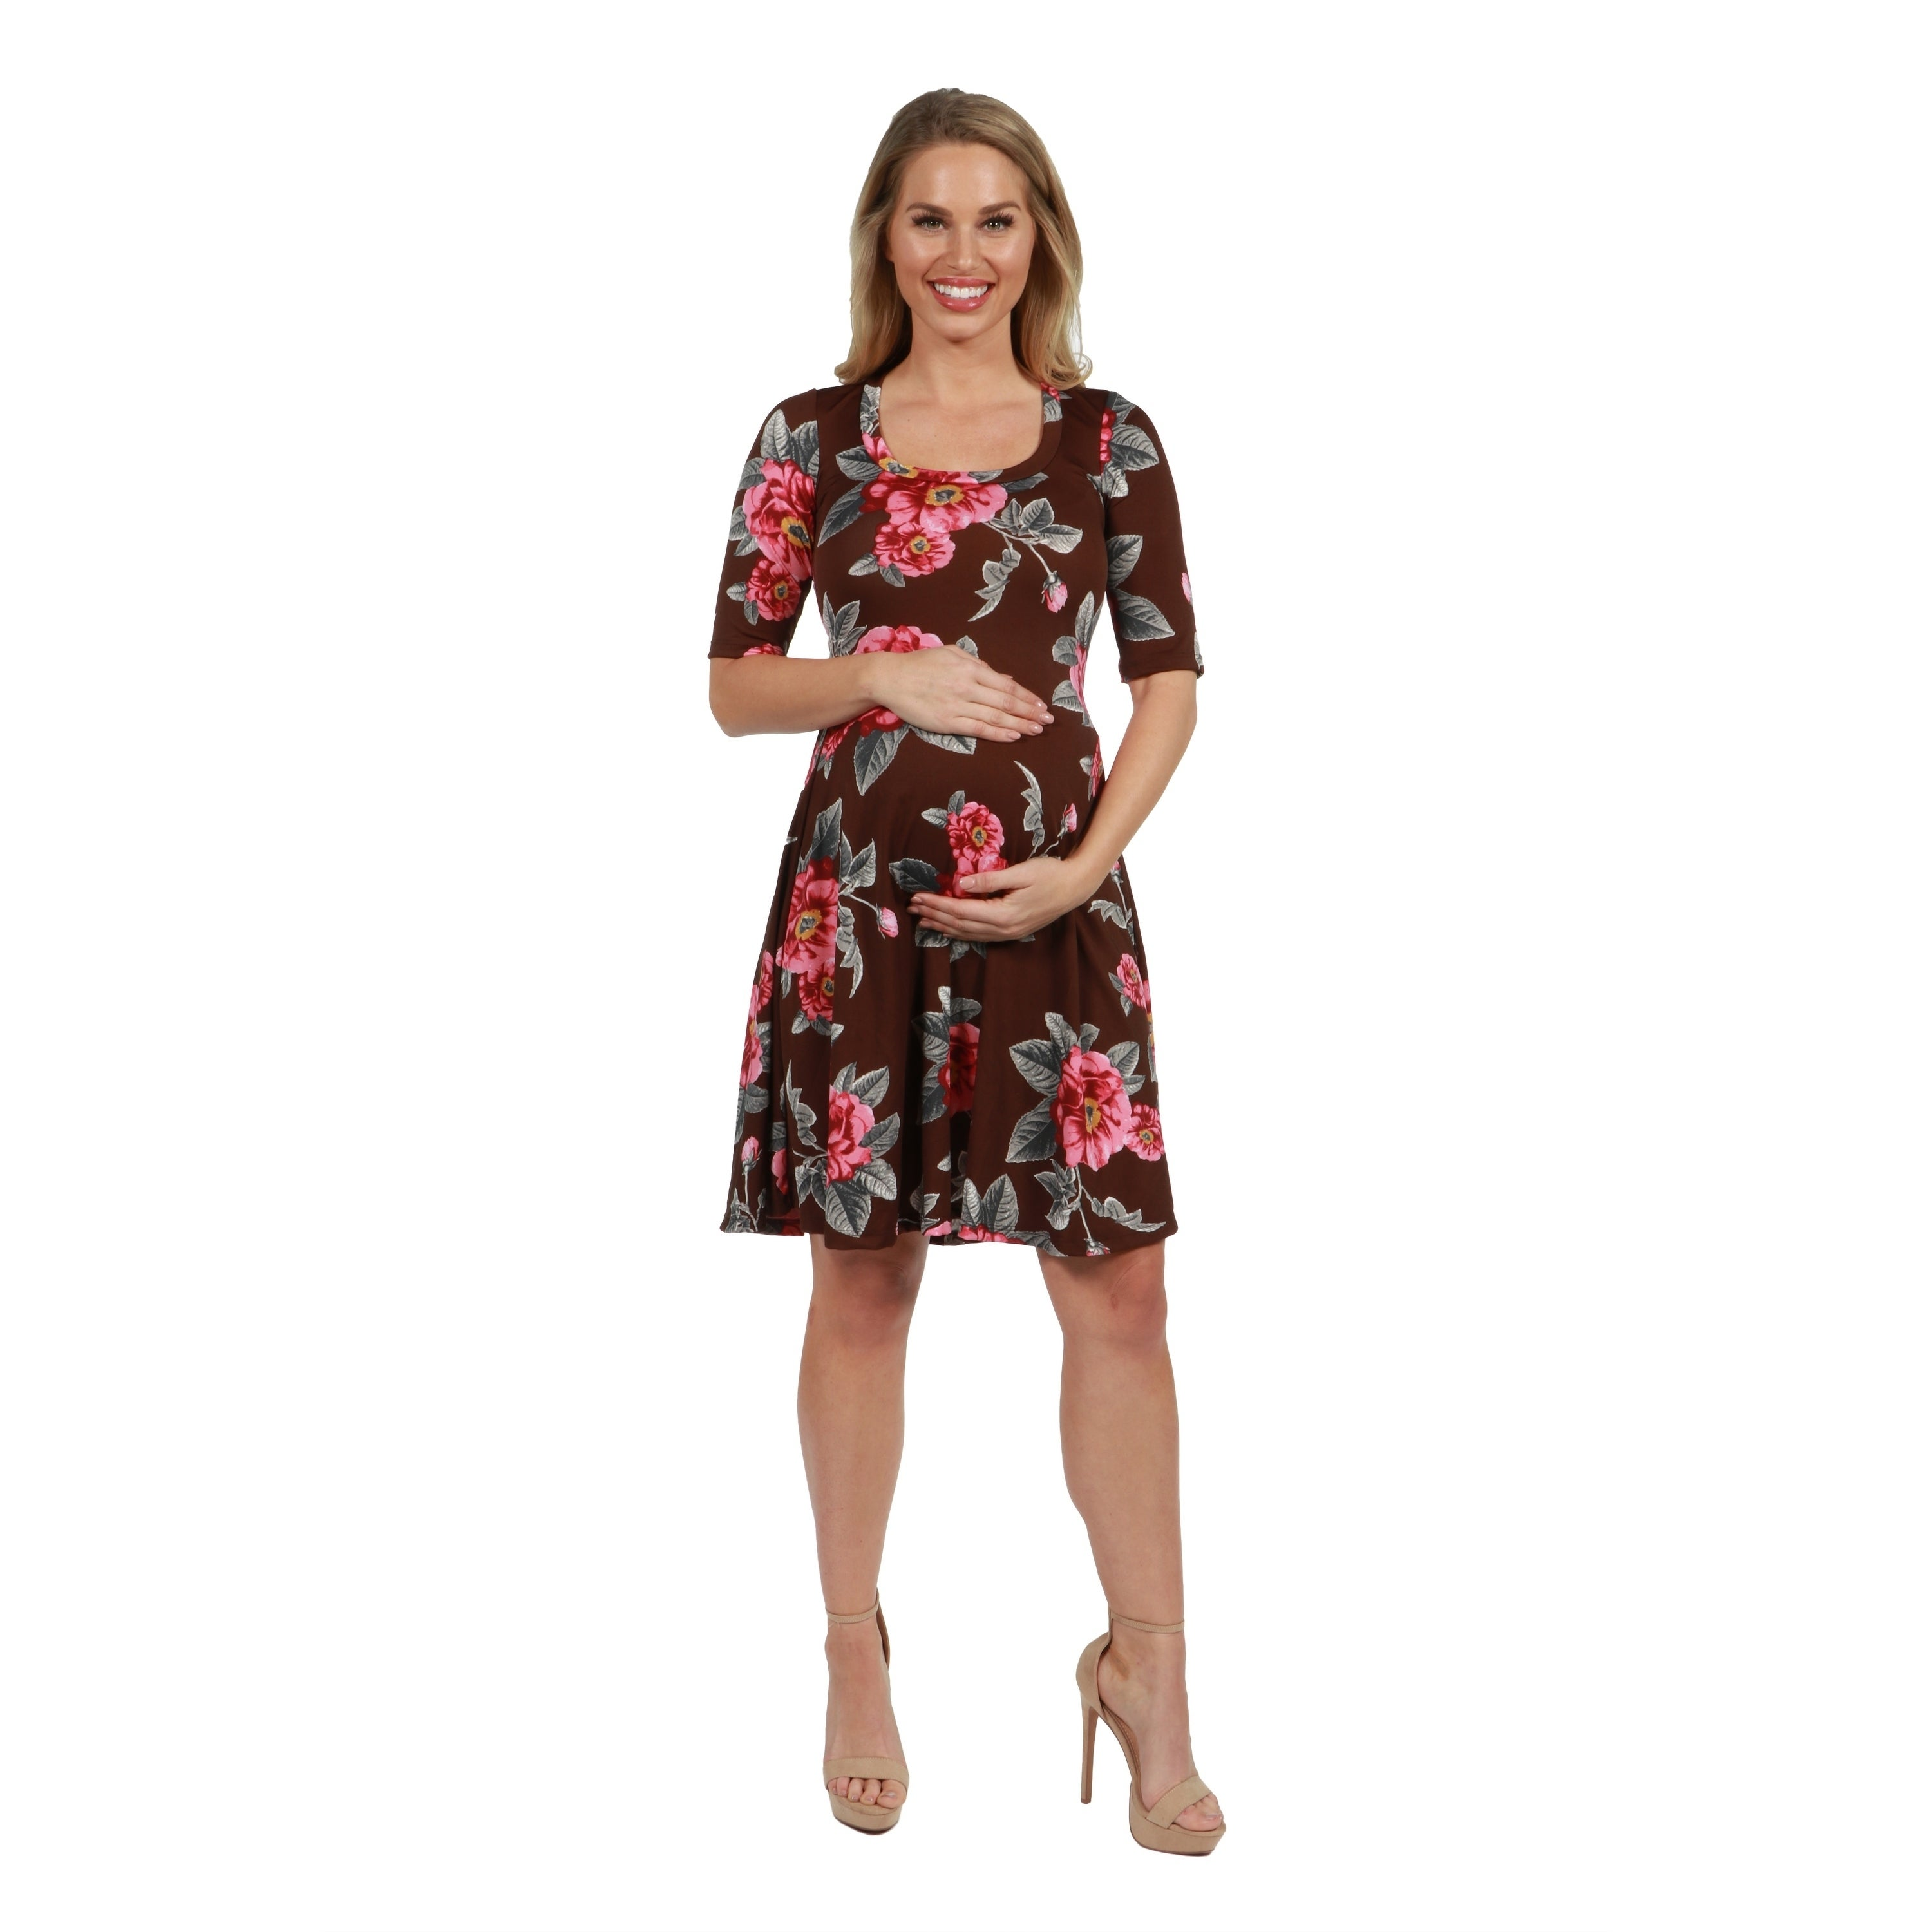 902bc97fcd 24Seven Comfort Apparel Gemma Brown Floral Maternity Knee Length Dress